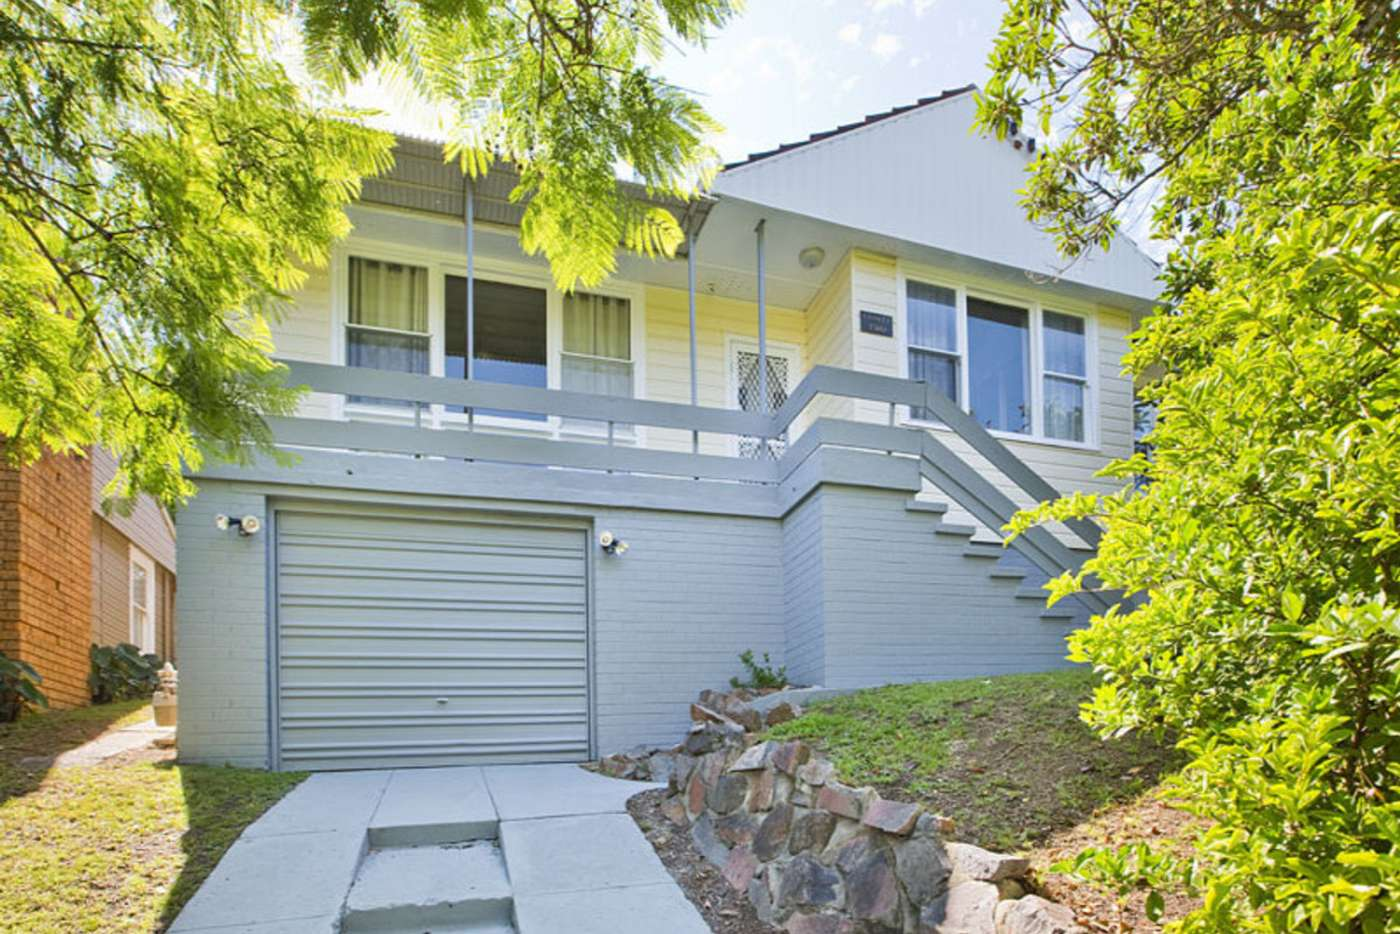 Main view of Homely house listing, 32 Willis Street, Charlestown NSW 2290